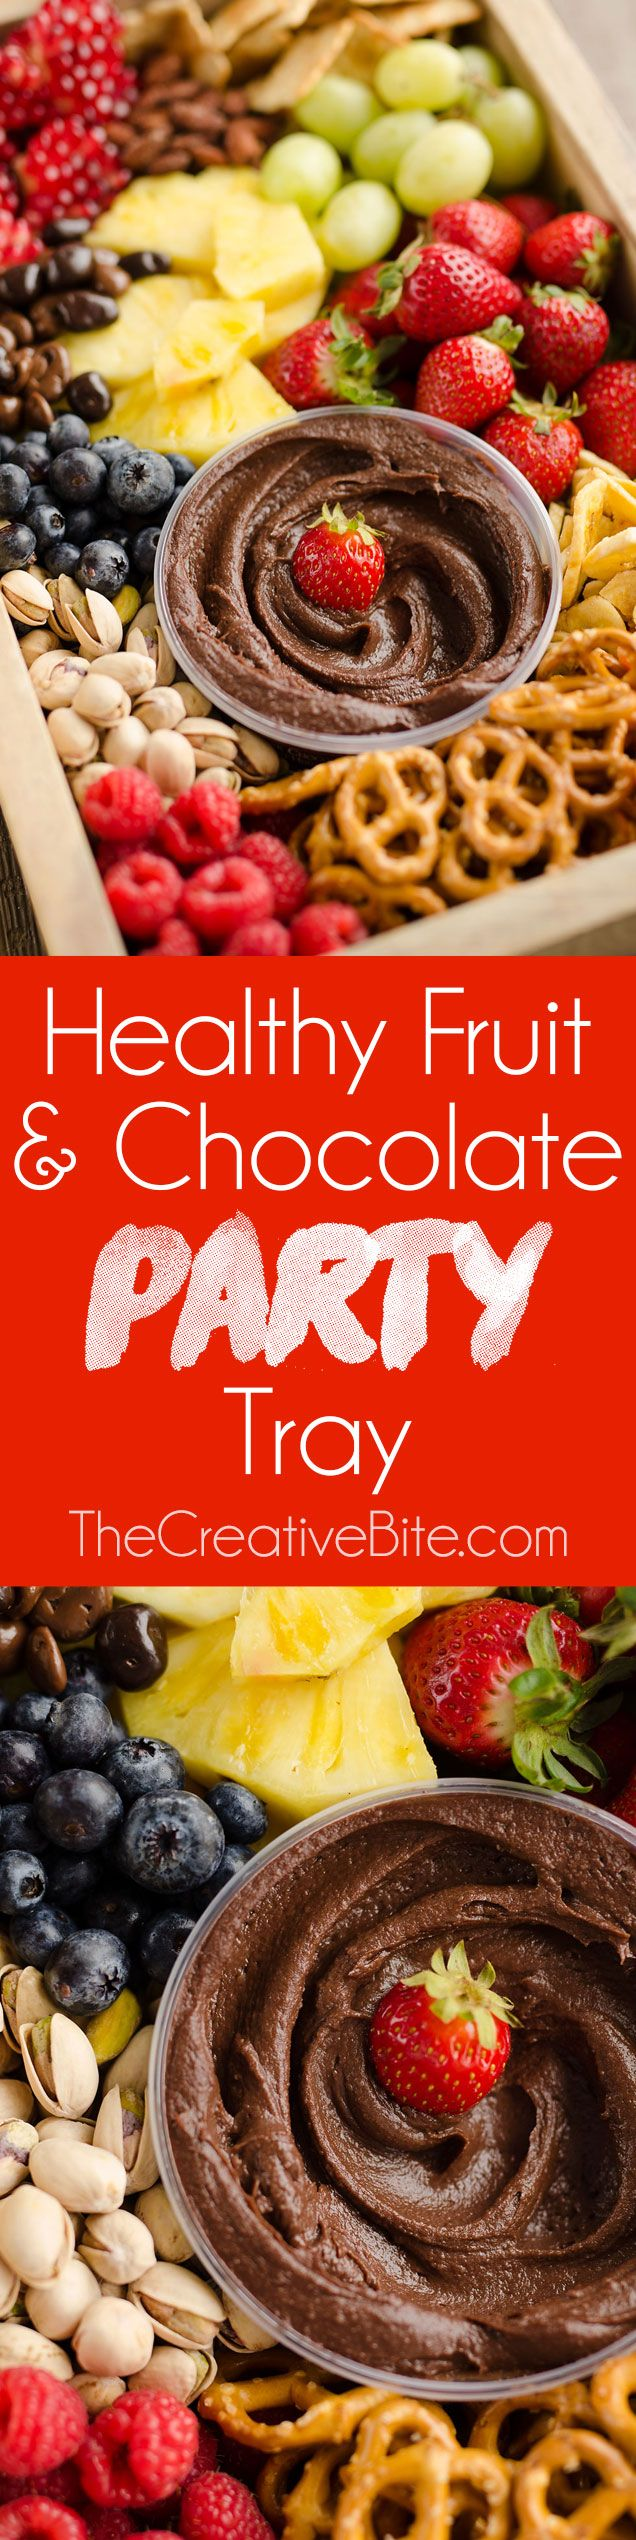 Healthy Fruit & Chocolate Party Tray is a fantastic appetizer for your next get-together. A wholesome mix of fruit, nuts, pretzels and more are served withBoar's Head Dark Chocolate Hum-mus for a selection of elegant and delicious finger food. #ad #AllFlavorNoGuilt